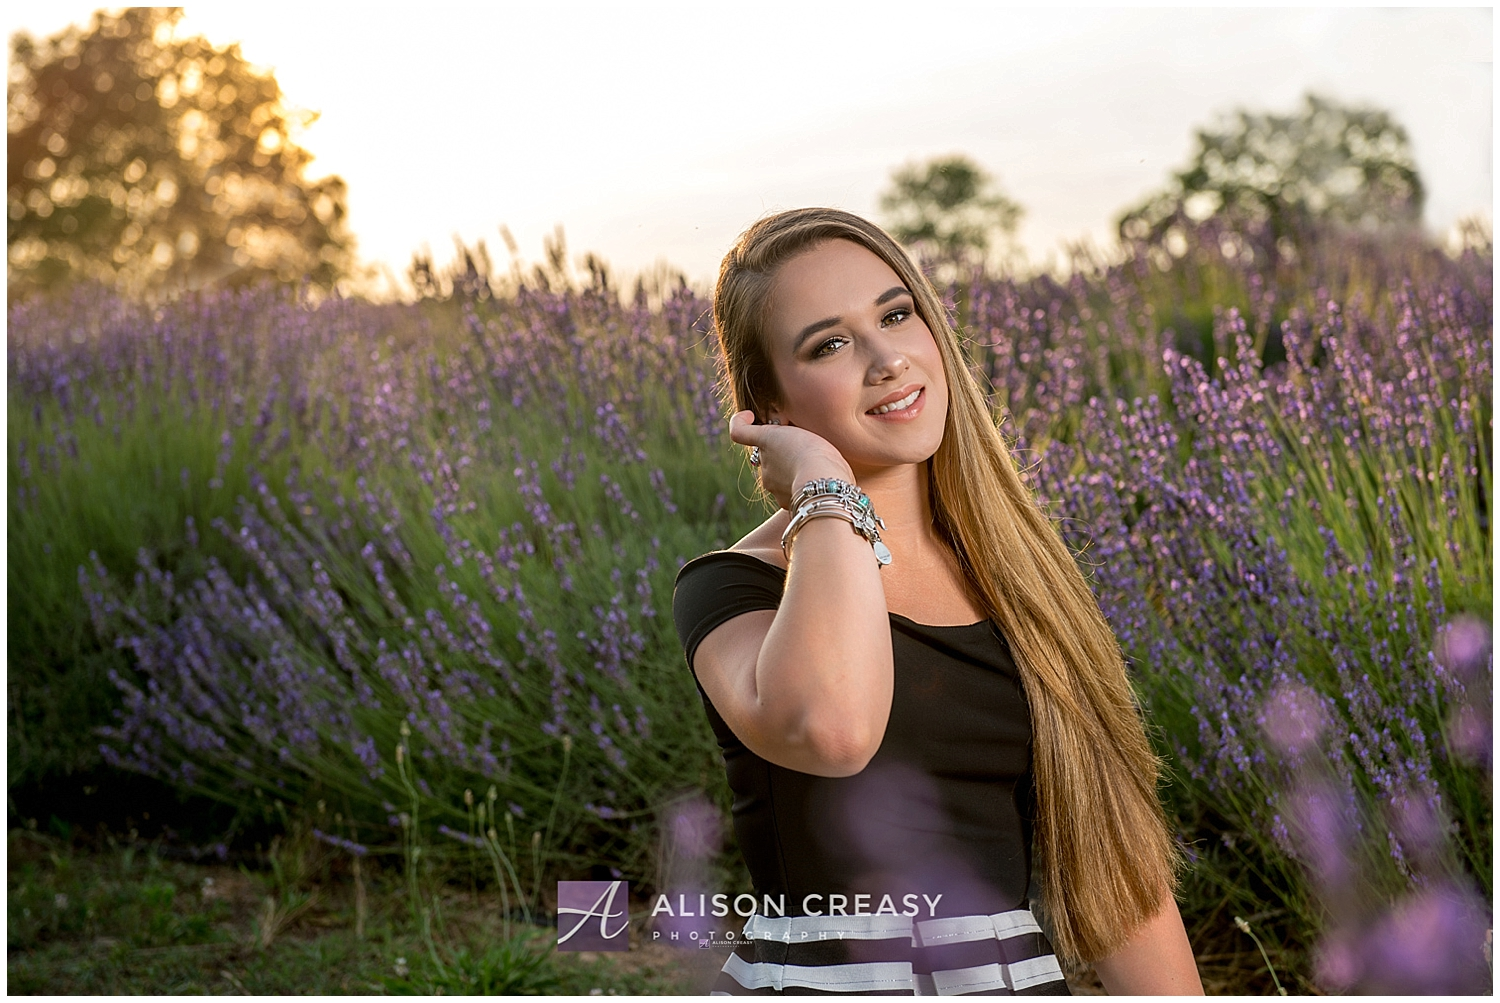 Alison-Creasy-Photography-Central-Virginia-Senior-Photographer_0191.jpg